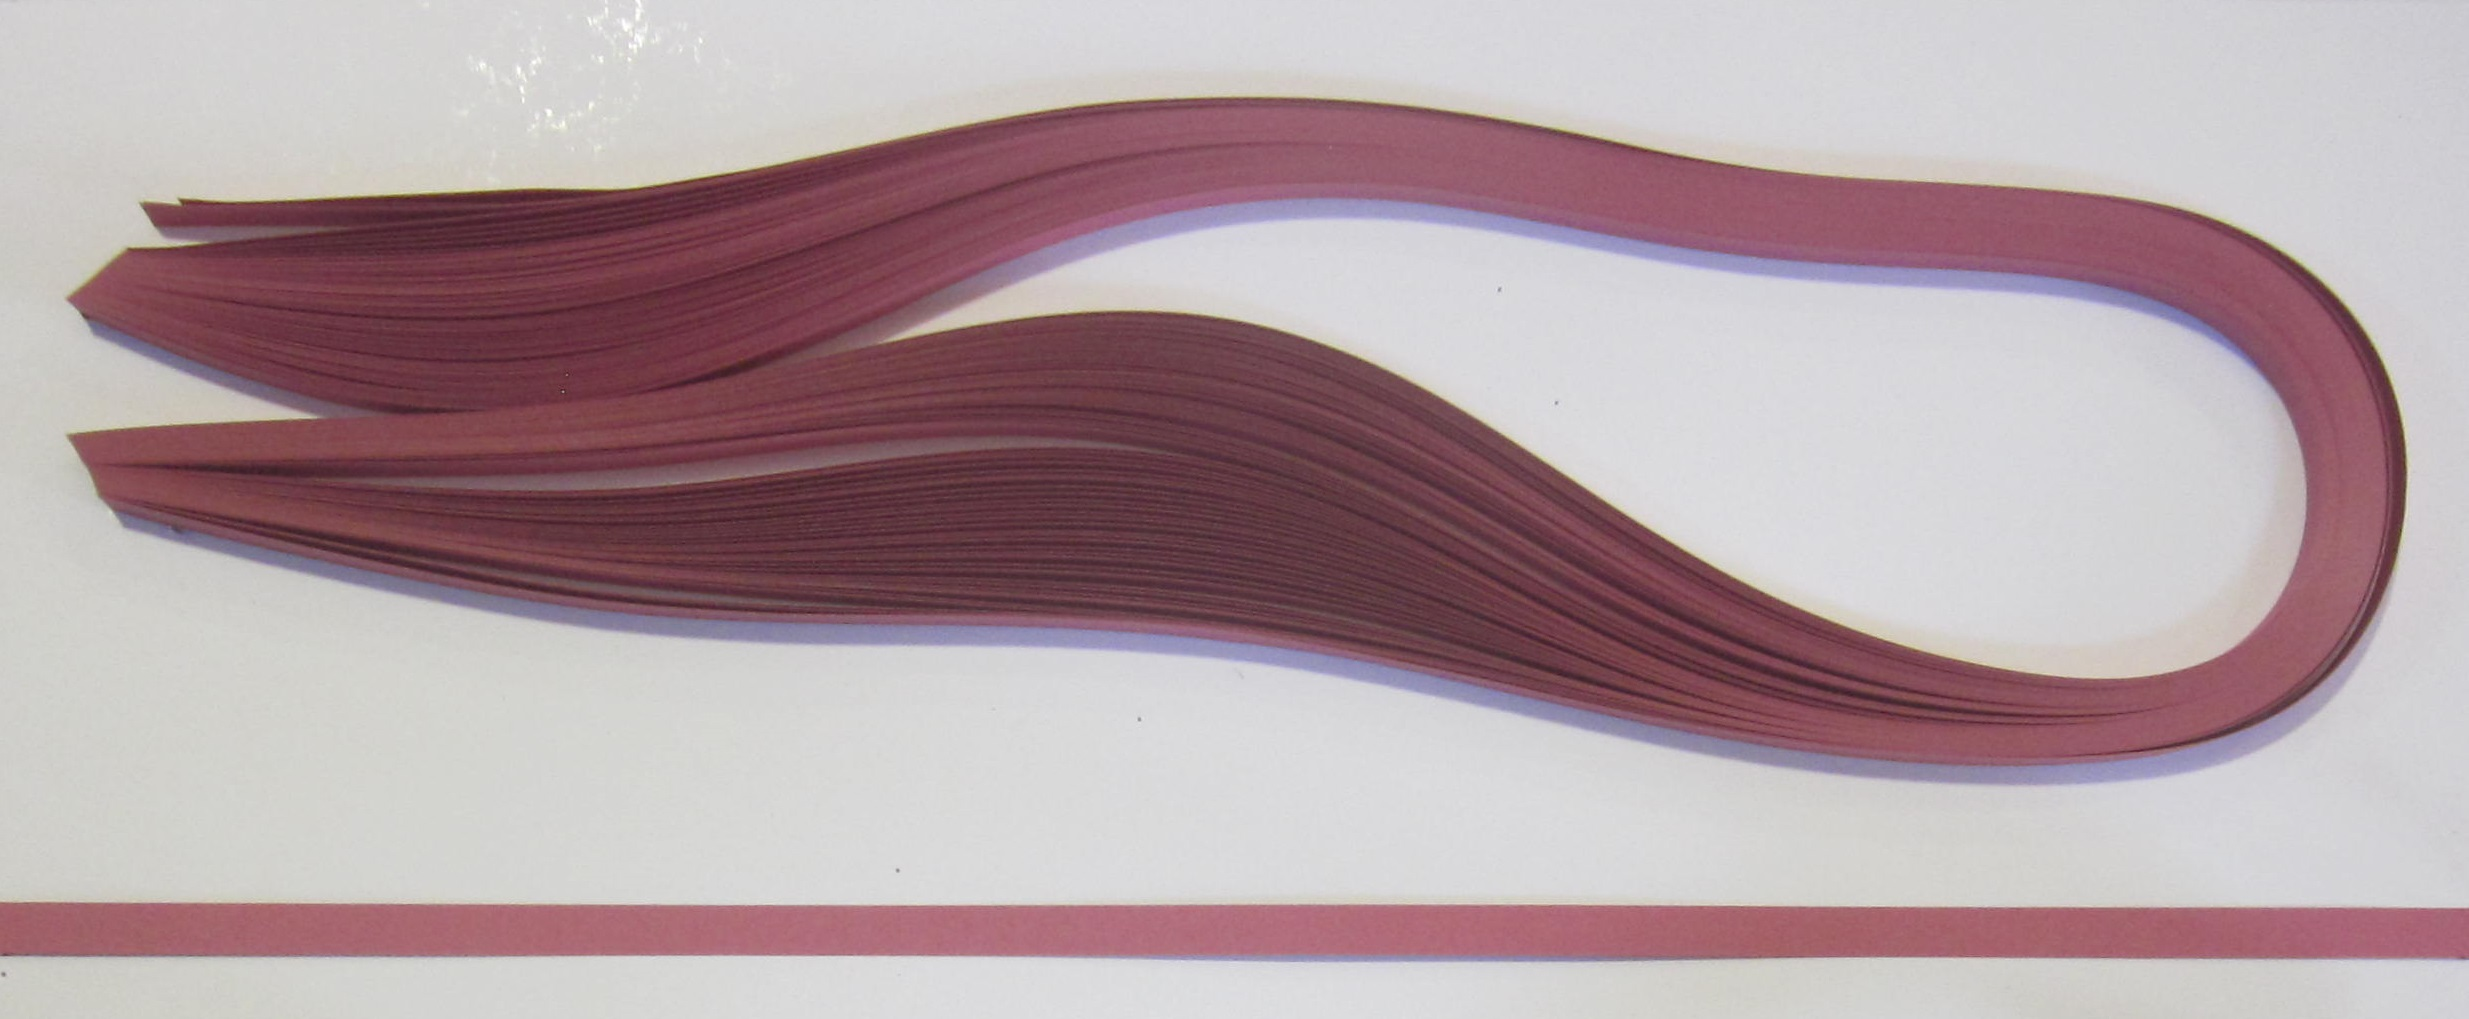 PAPEL QUILLING 321, 3MM. PURPURA